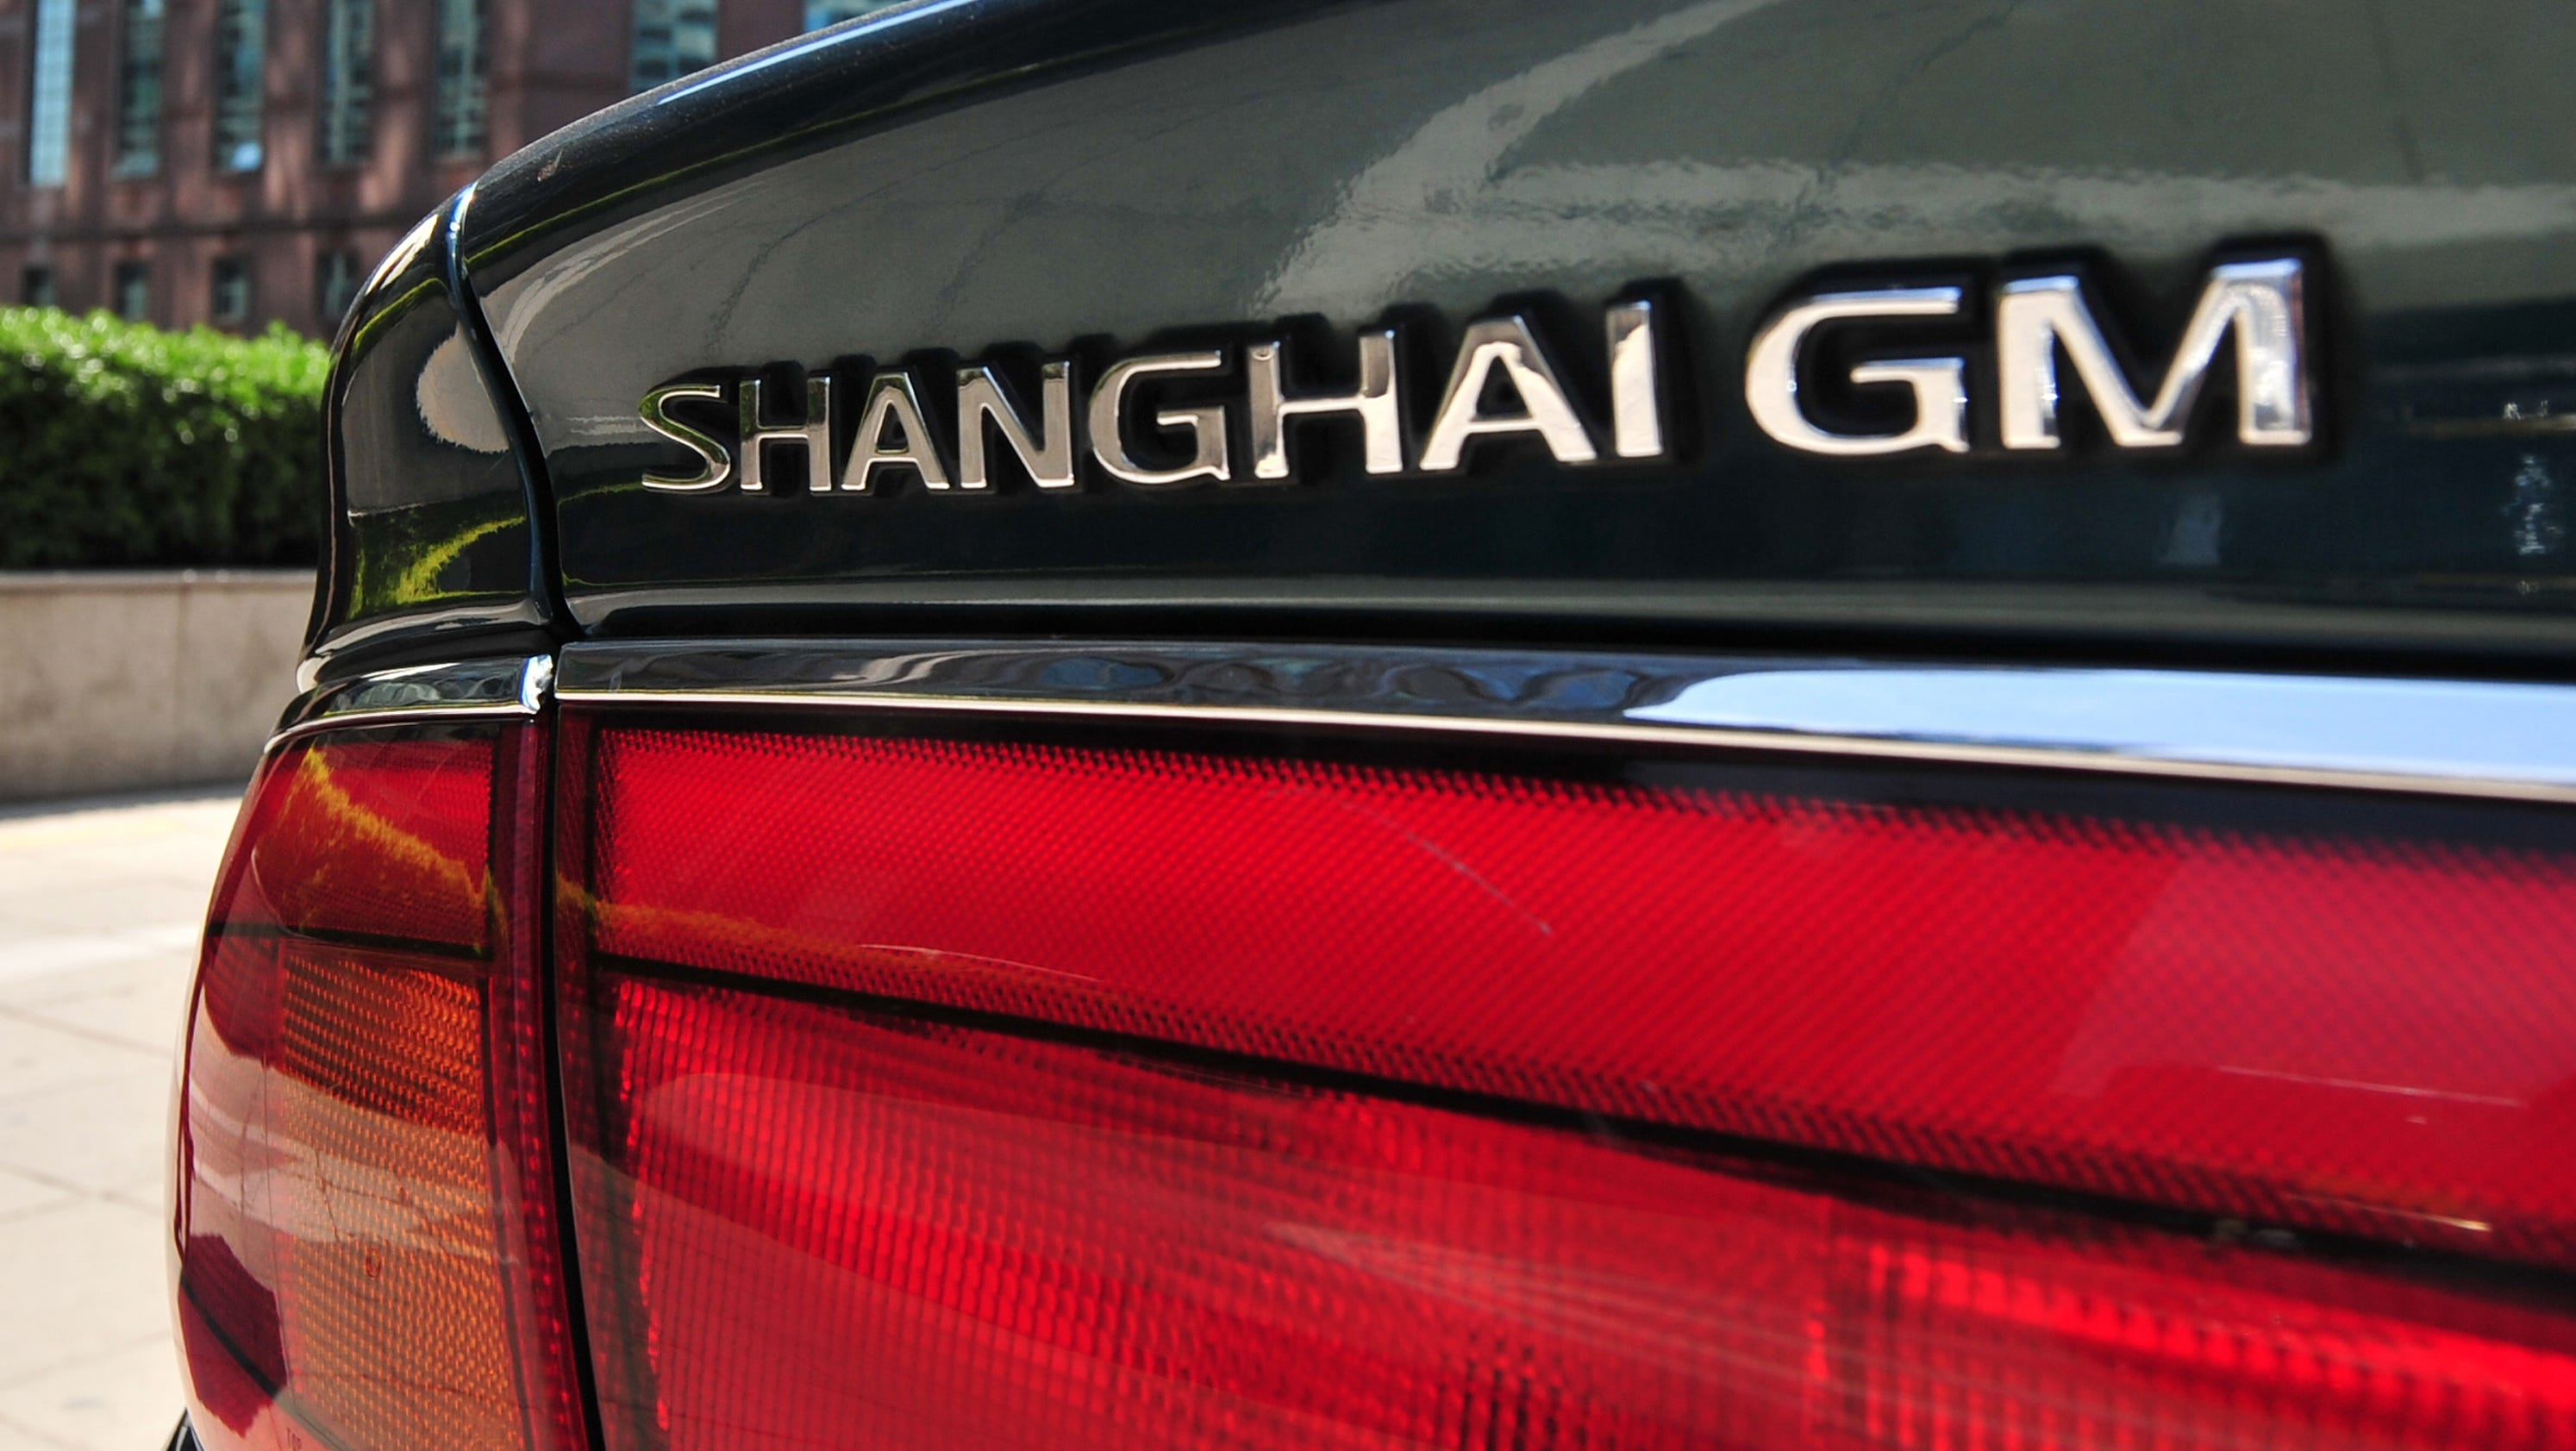 Shanghai Gm Latest Maker In China Antitrust Probe